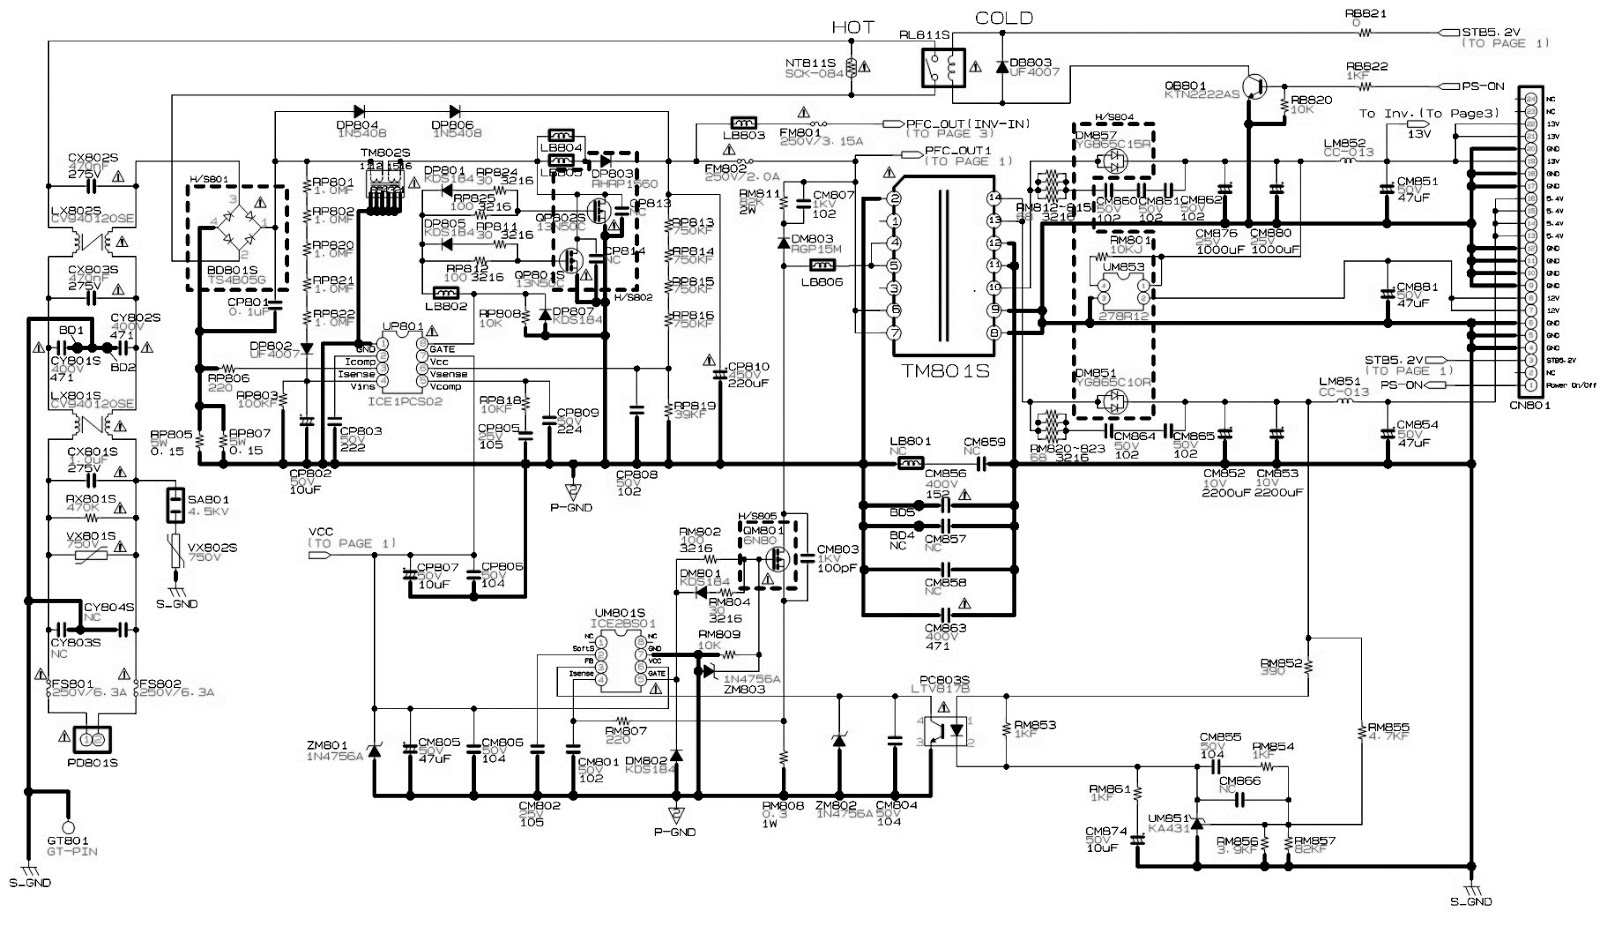 Smps Schematic Diagram Class A Fire Alarm Wiring Bn44 00165a Samsung Led Lcd Tv Circuit